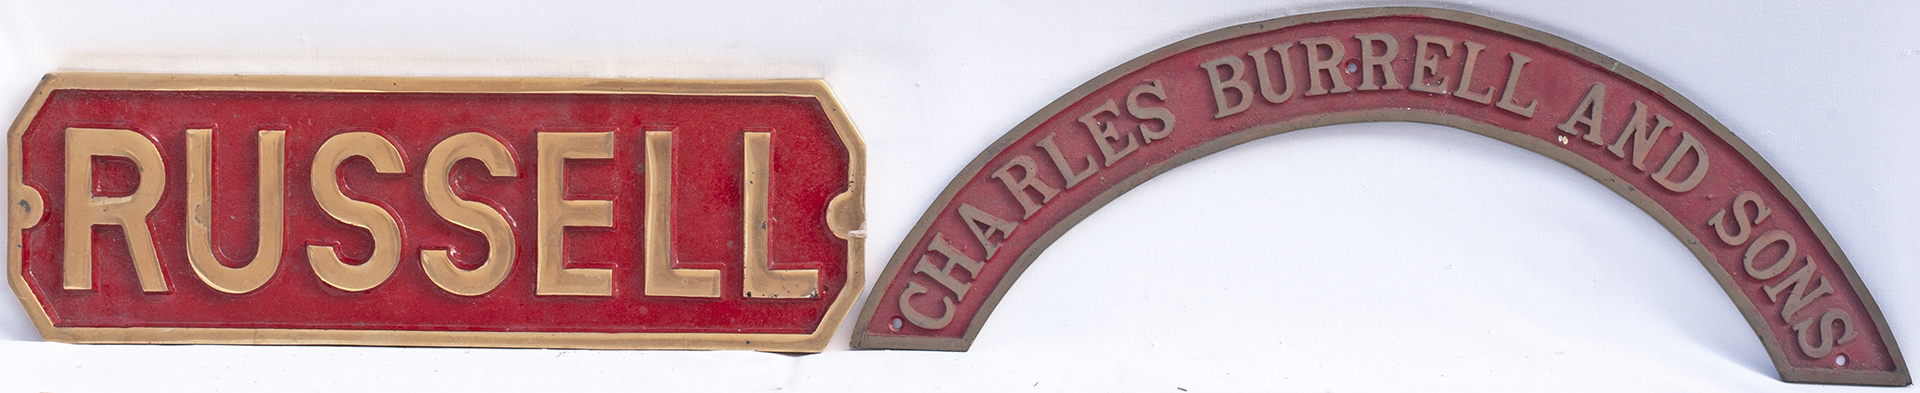 REPRODUCTION Brass Engine Nameplate. RUSSELL measuring 18.75 in x 6in together with a reproduction